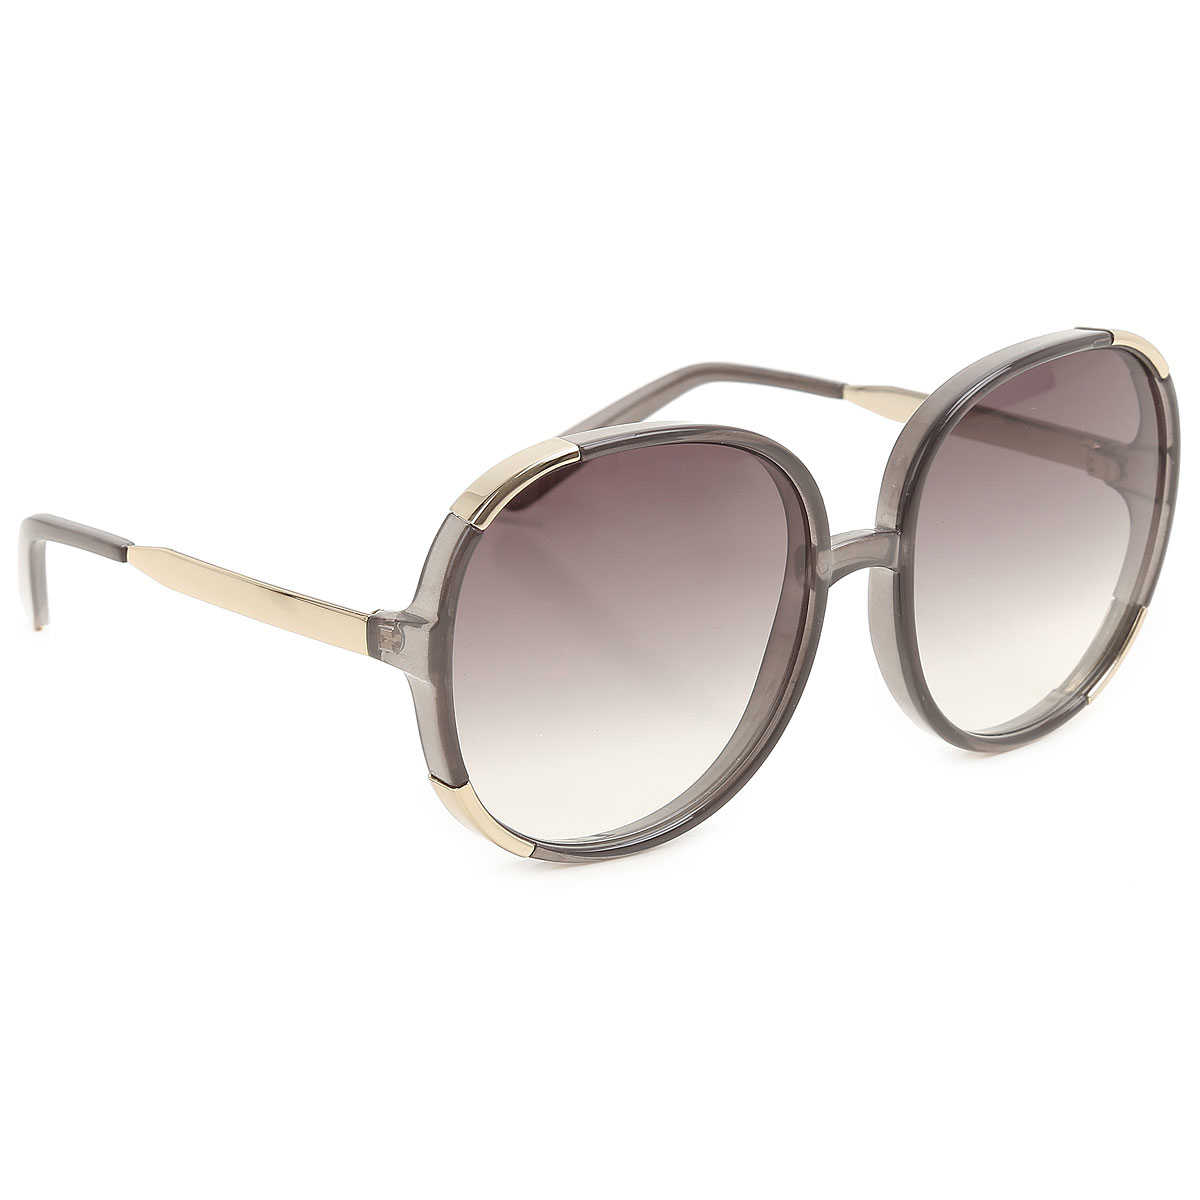 Chloe Sunglasses On Sale